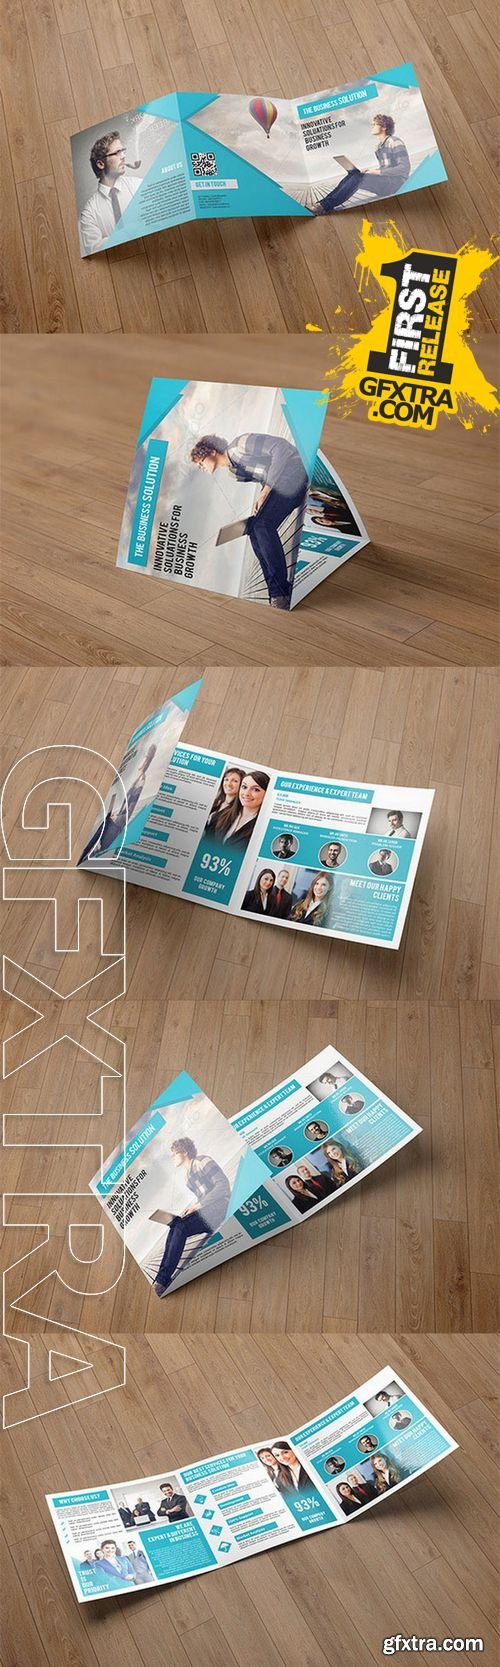 Business Brochure - CM 144250